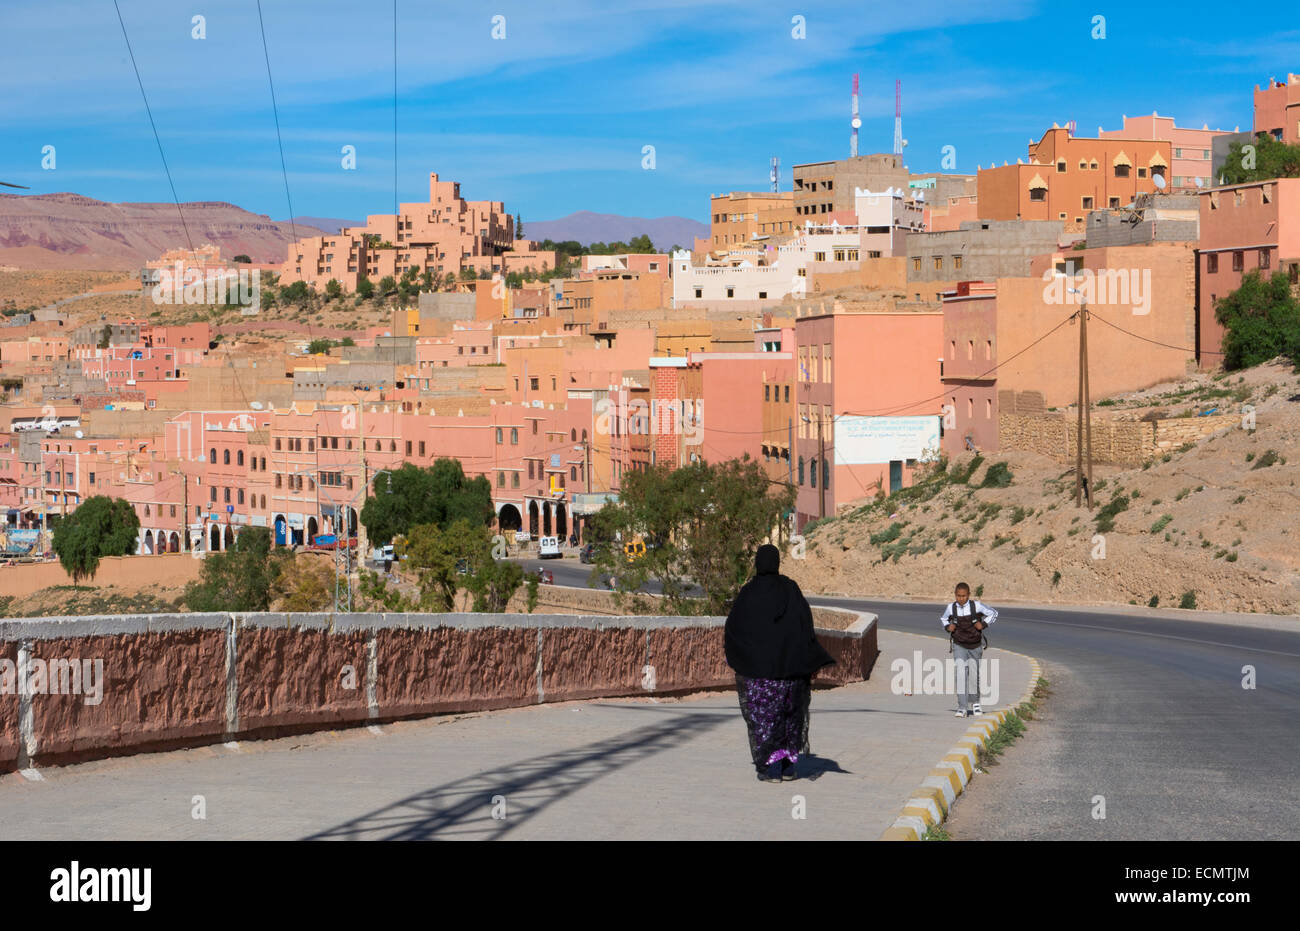 Morocco Atlas Mountains Boulmane Danes village with mountains and old buildings - Stock Image